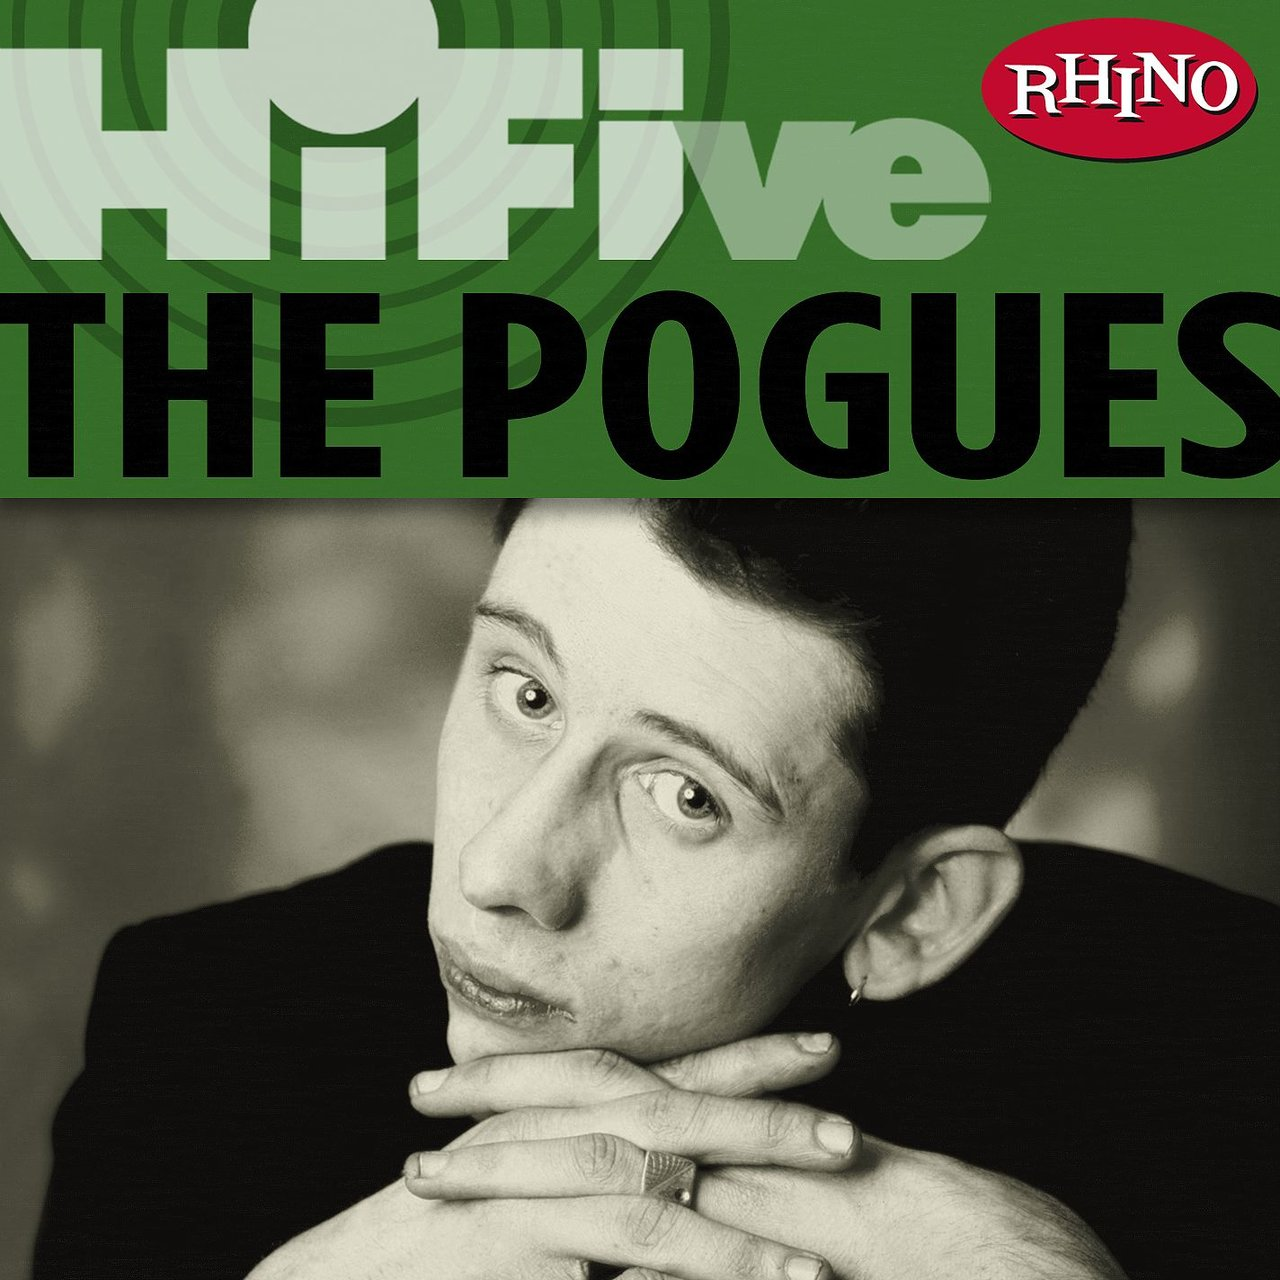 Rhino Hi-Five: The Pogues